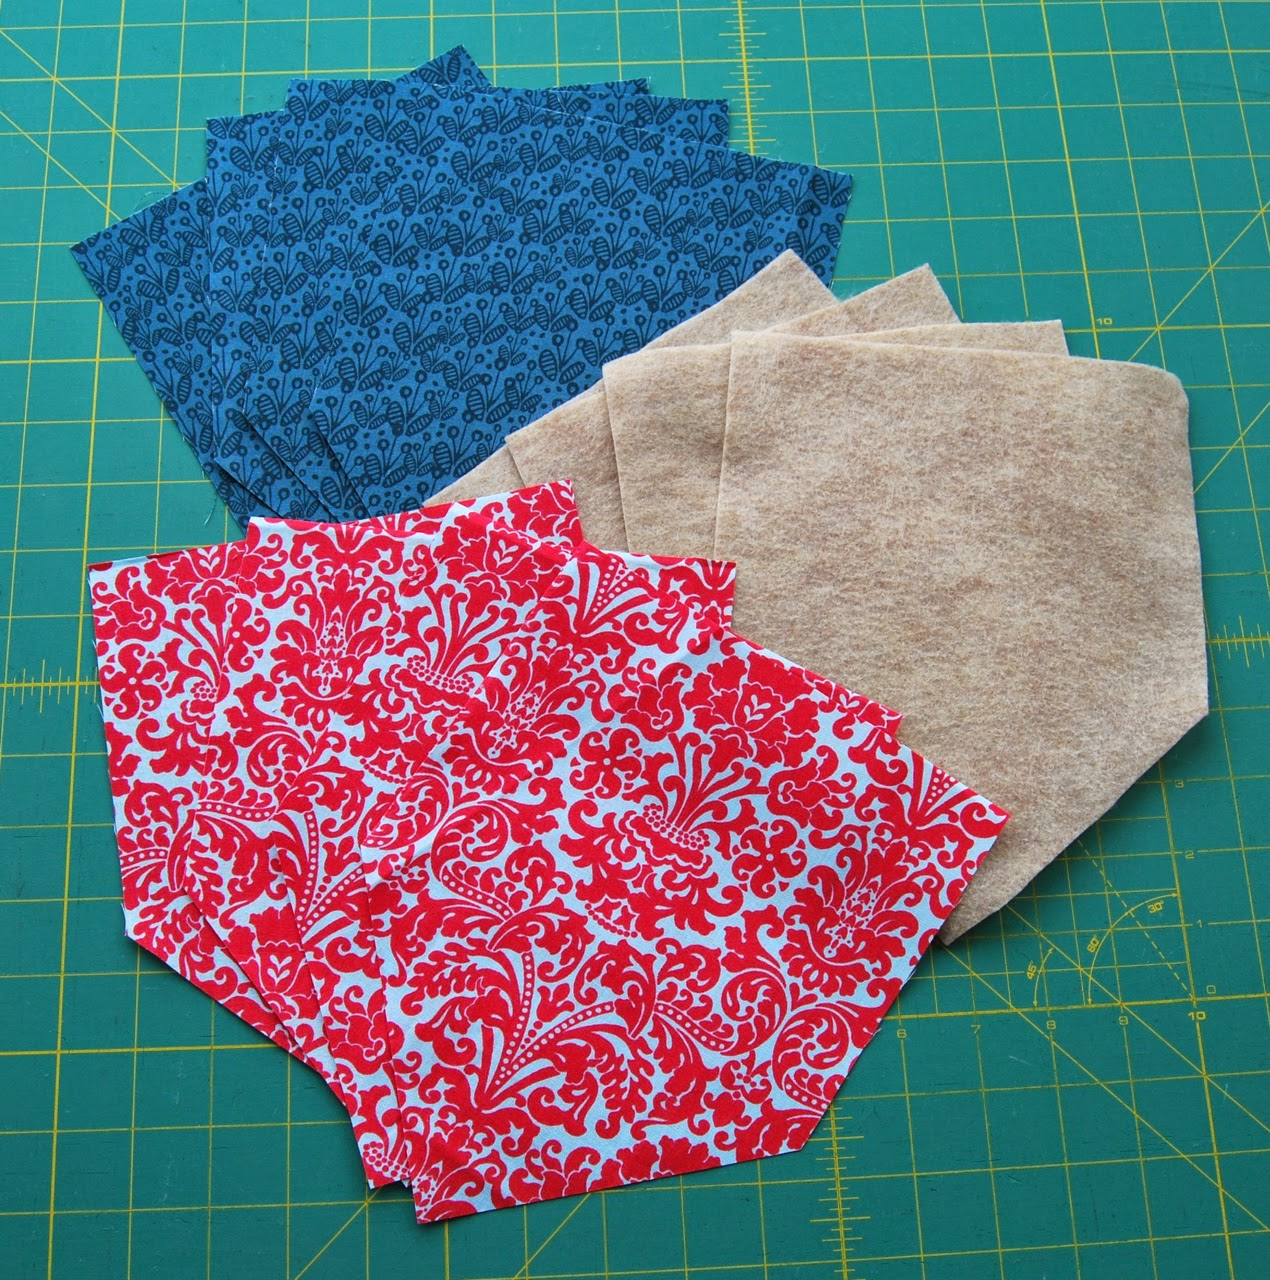 fabric pieces cut out